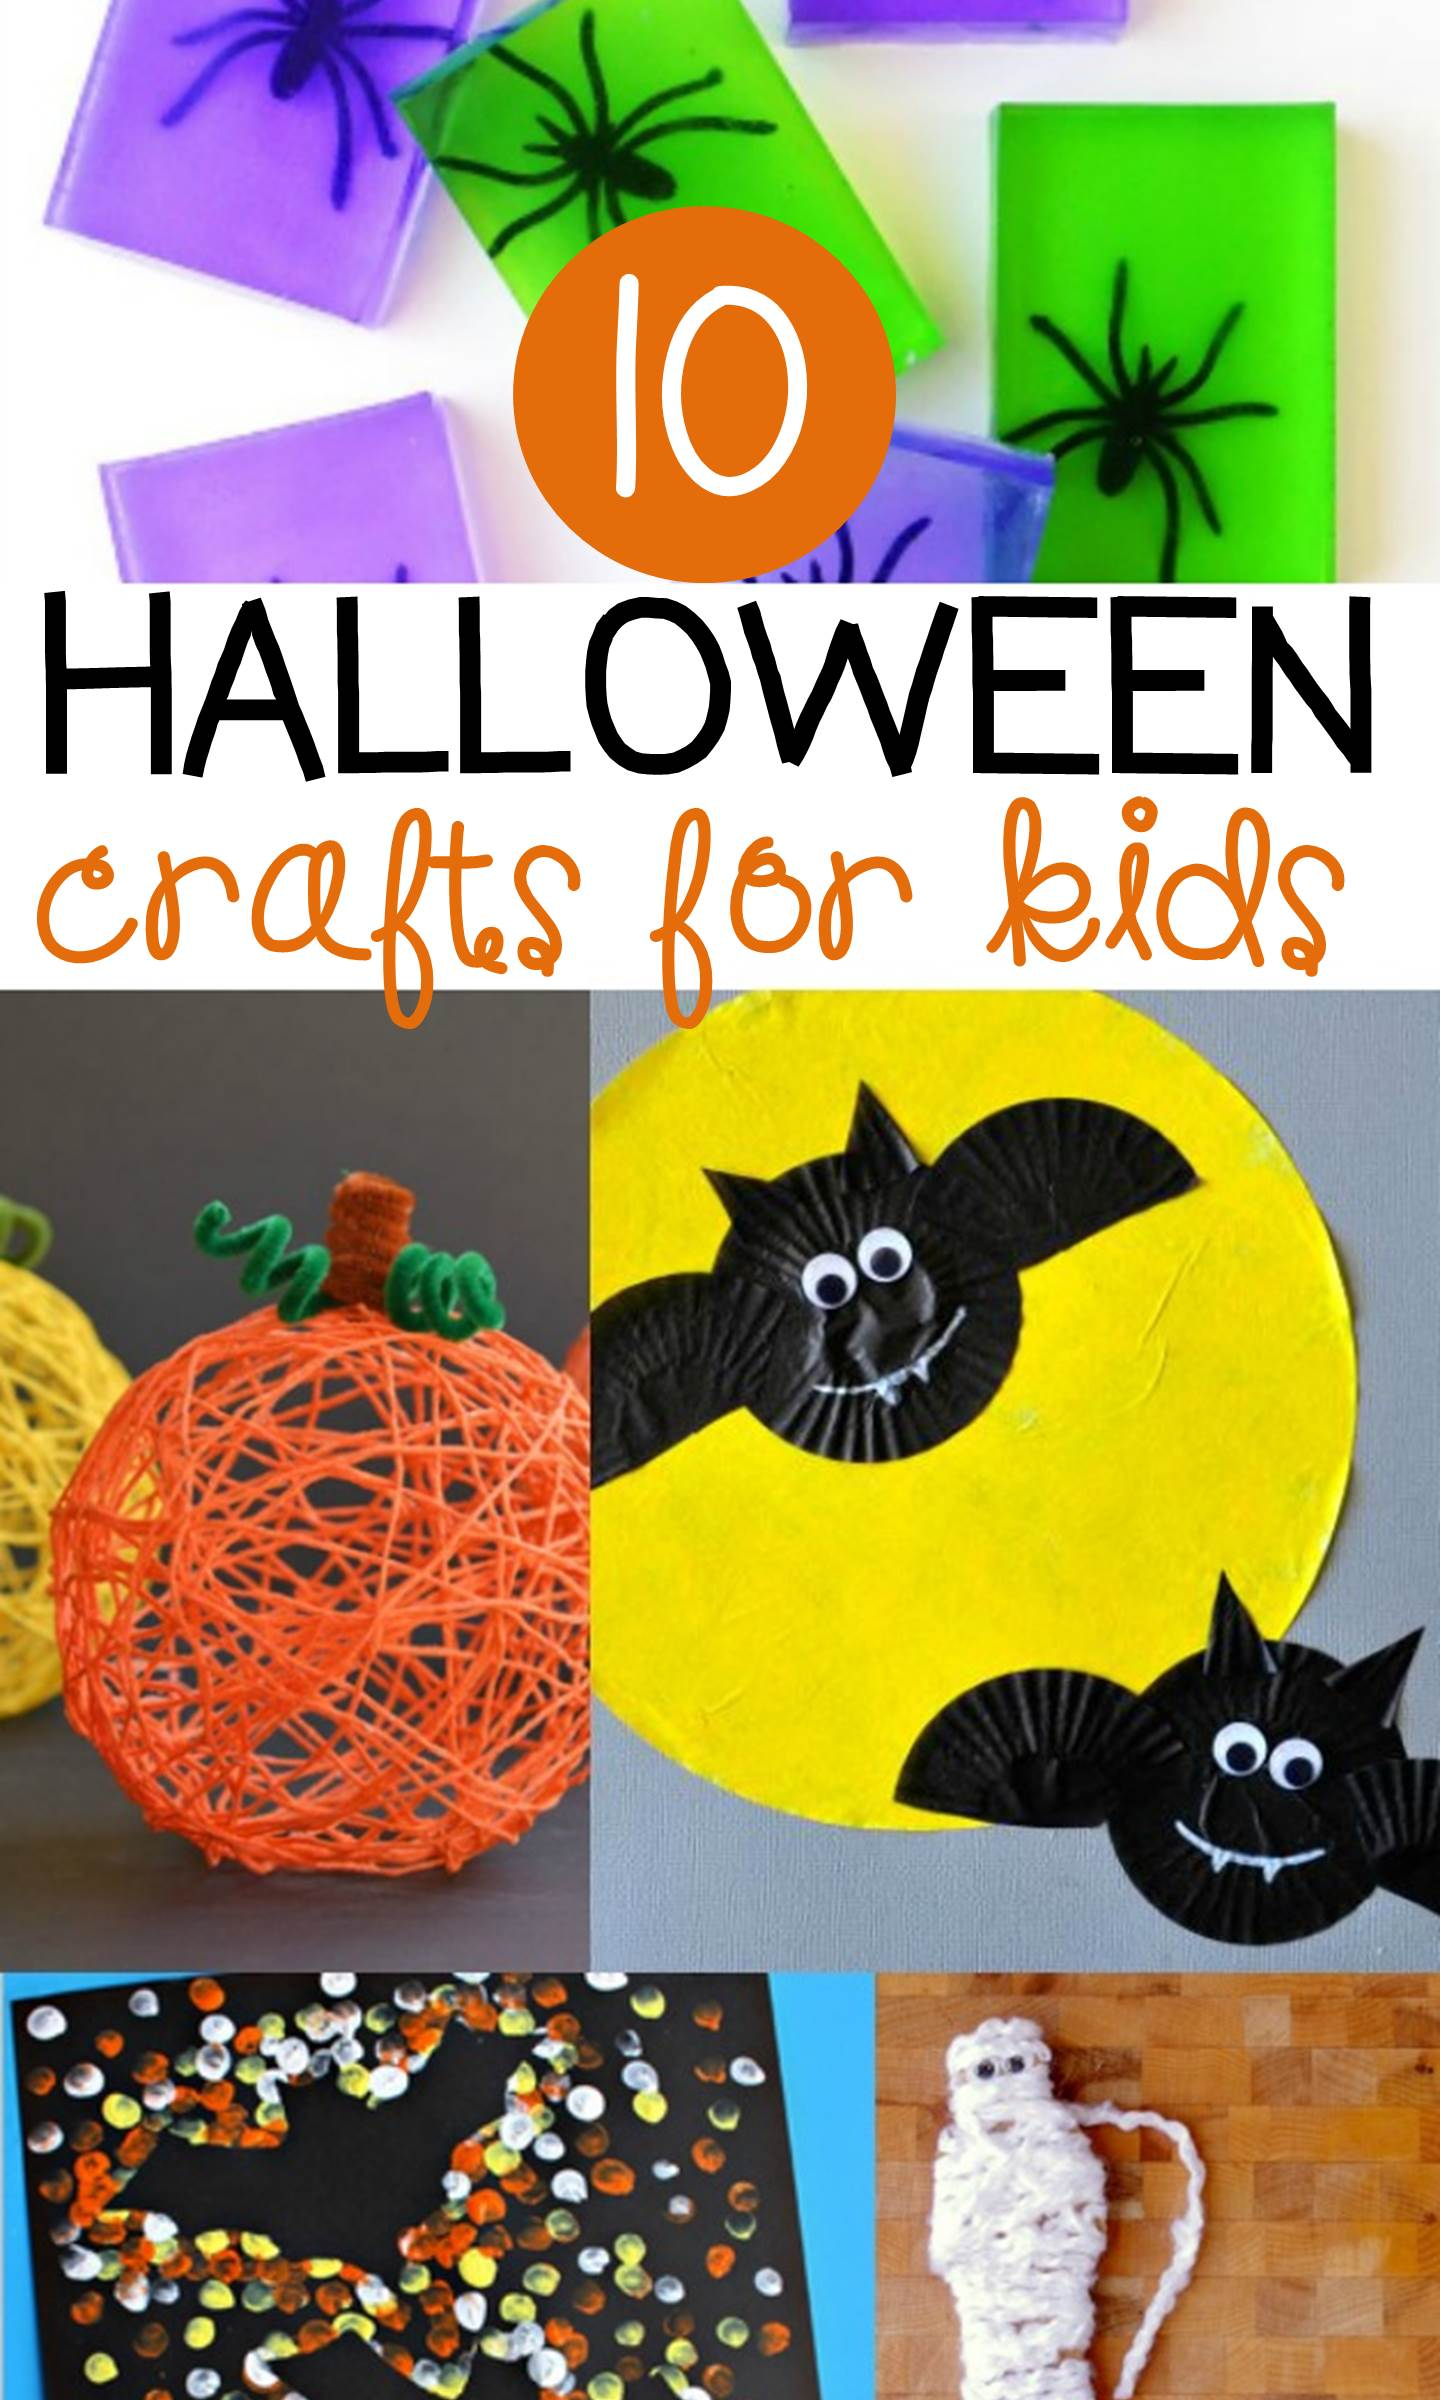 10 Halloween Crafts for Kids - The Kindergarten Connection